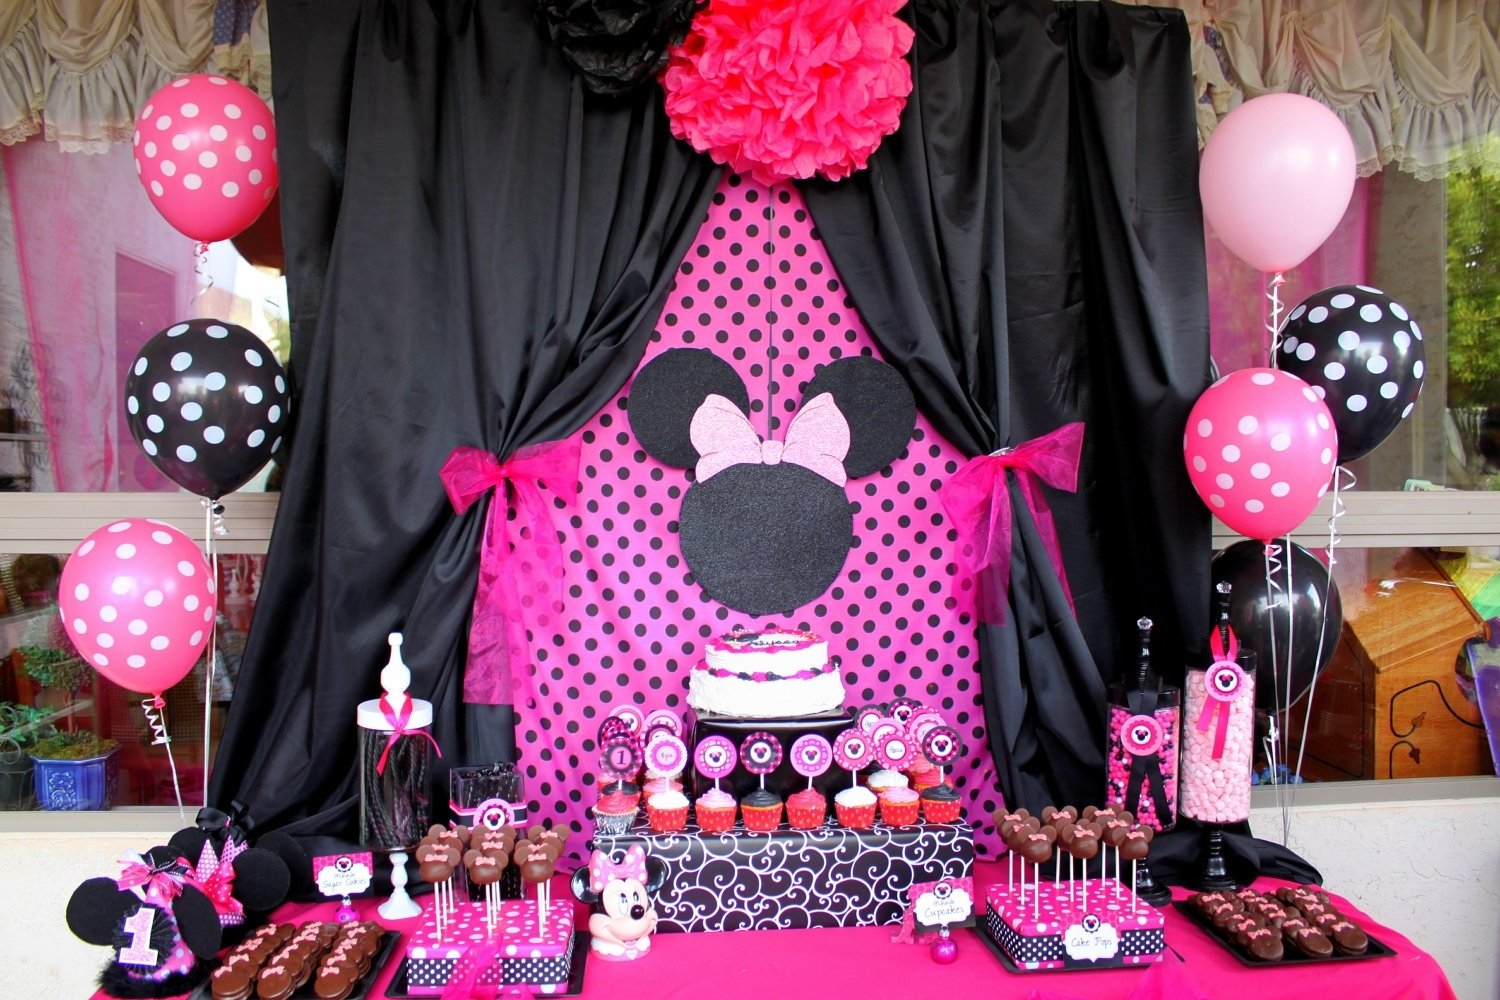 10 Ideal Ideas For Minnie Mouse Birthday Party mickey minnie mouse birthday decorations minnie mouse birthday 1 2020